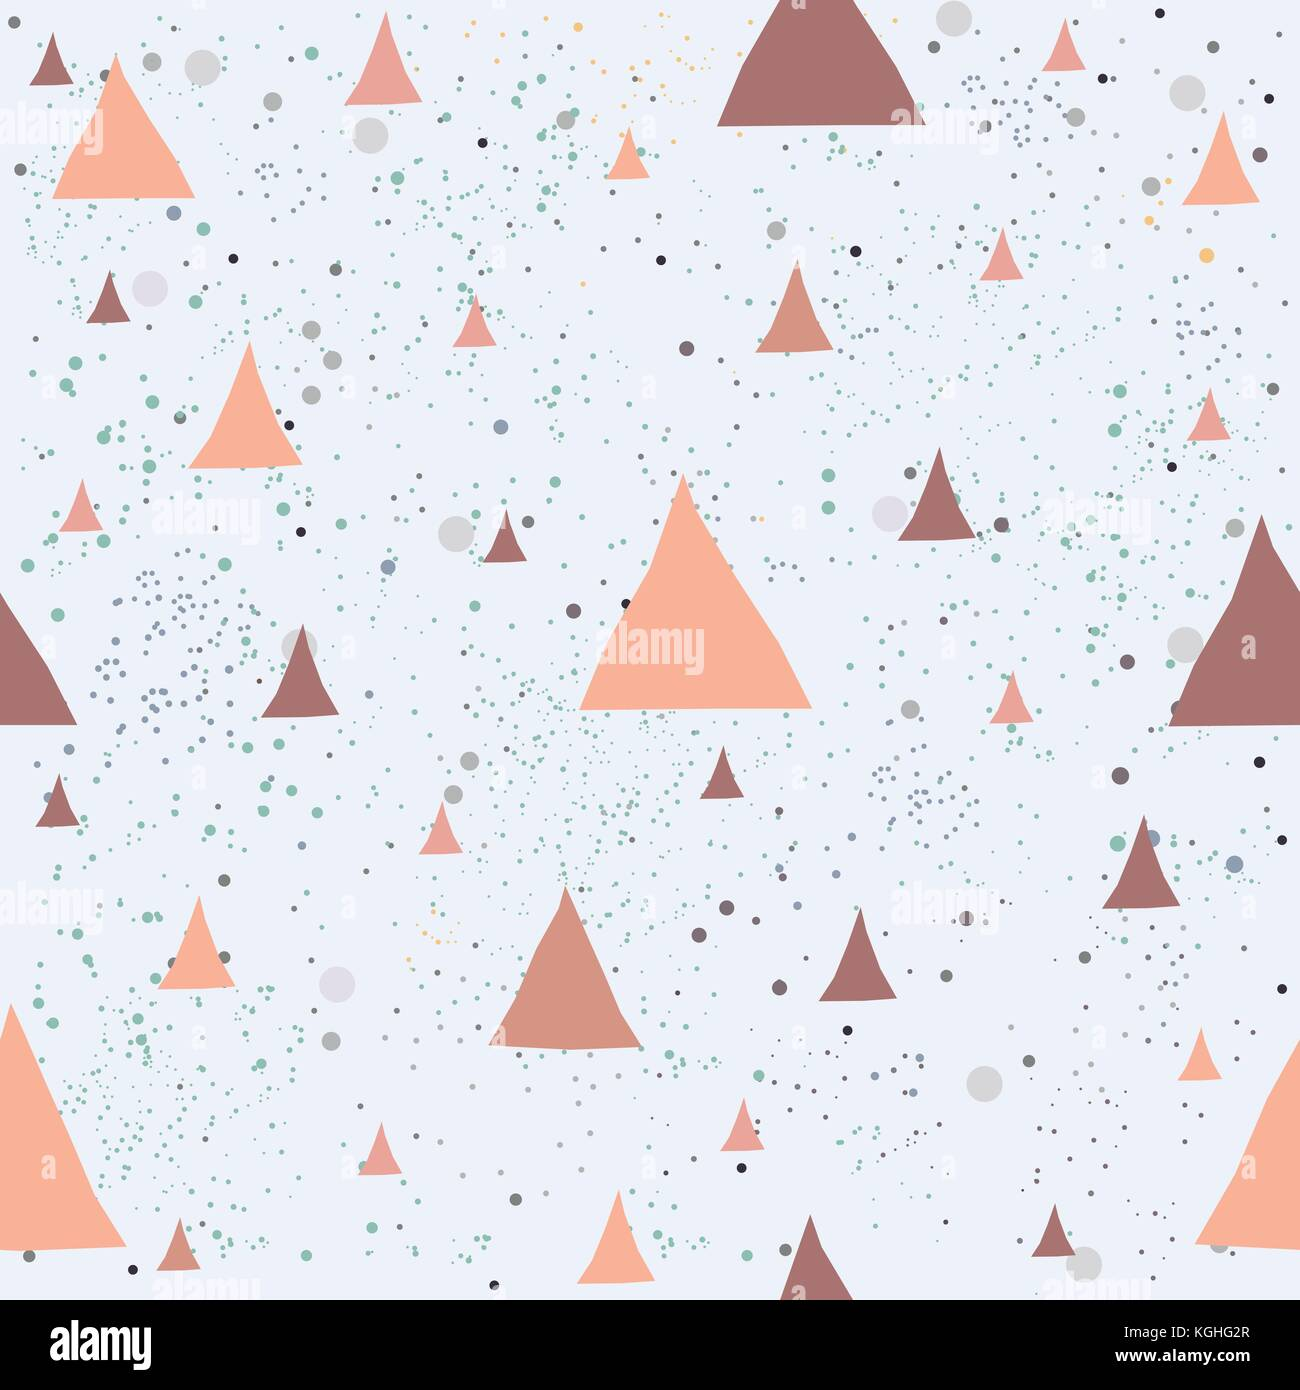 Cute Pattern with Golden triangles with pastel blue stripes. beige background with tiny dots.Hand Drawn Design. - Stock Image